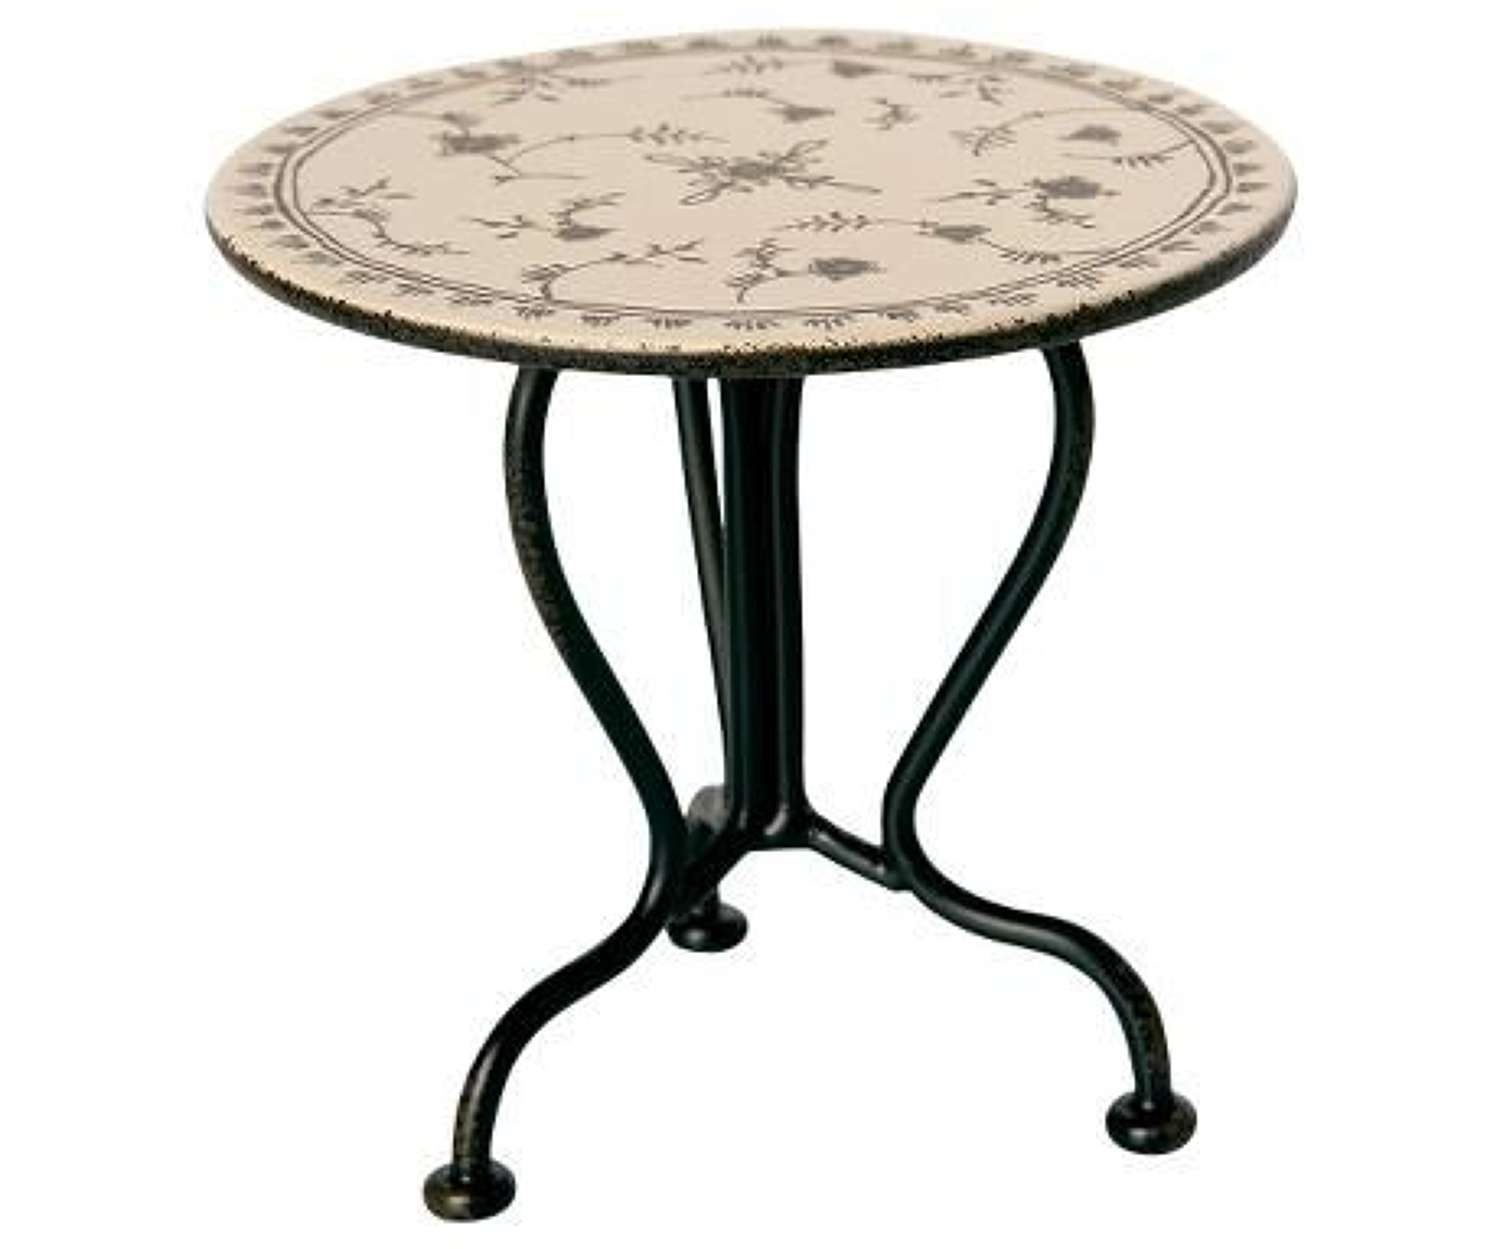 Maileg-vintage tea table-mirco table top with pretty floral pattern